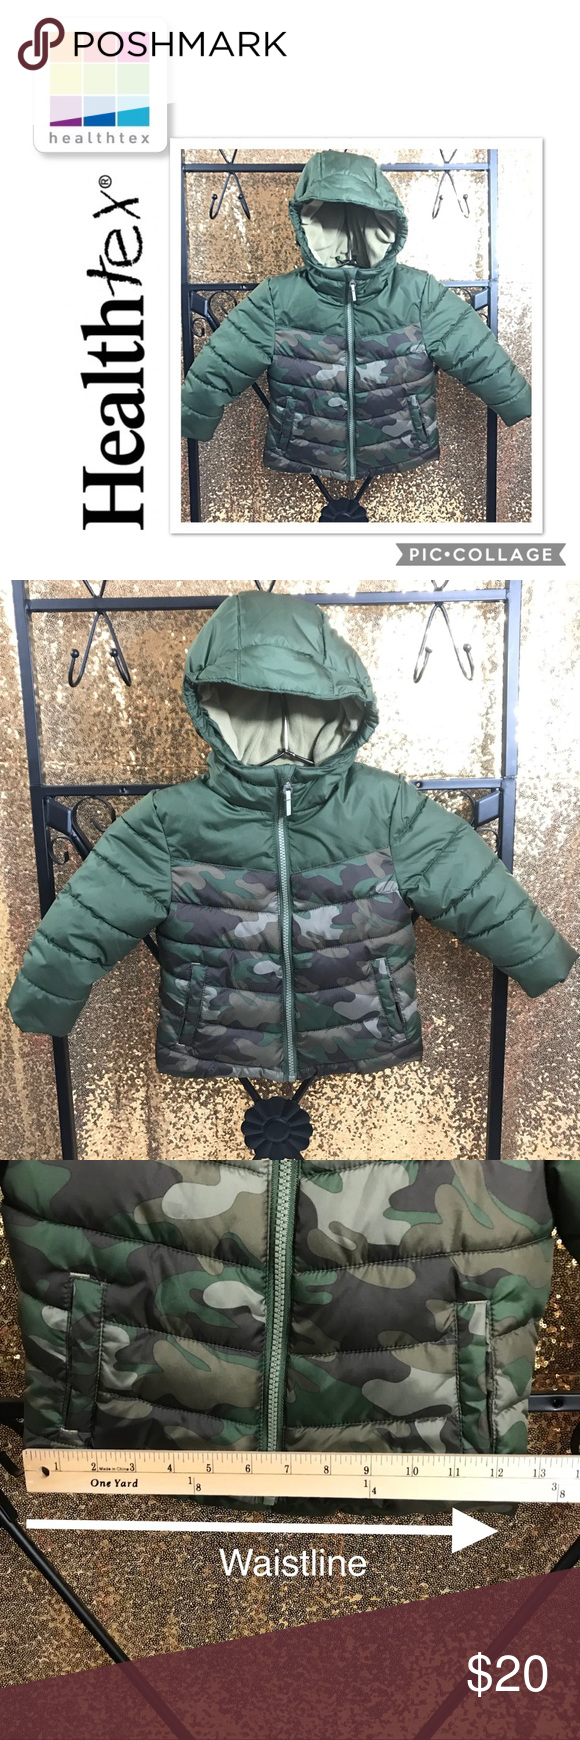 8e255a746 Infant/TDLR Boys Camouflage Winter Puffer Jacket Infant & Toddler Boys  Green Camouflage Coat Winter